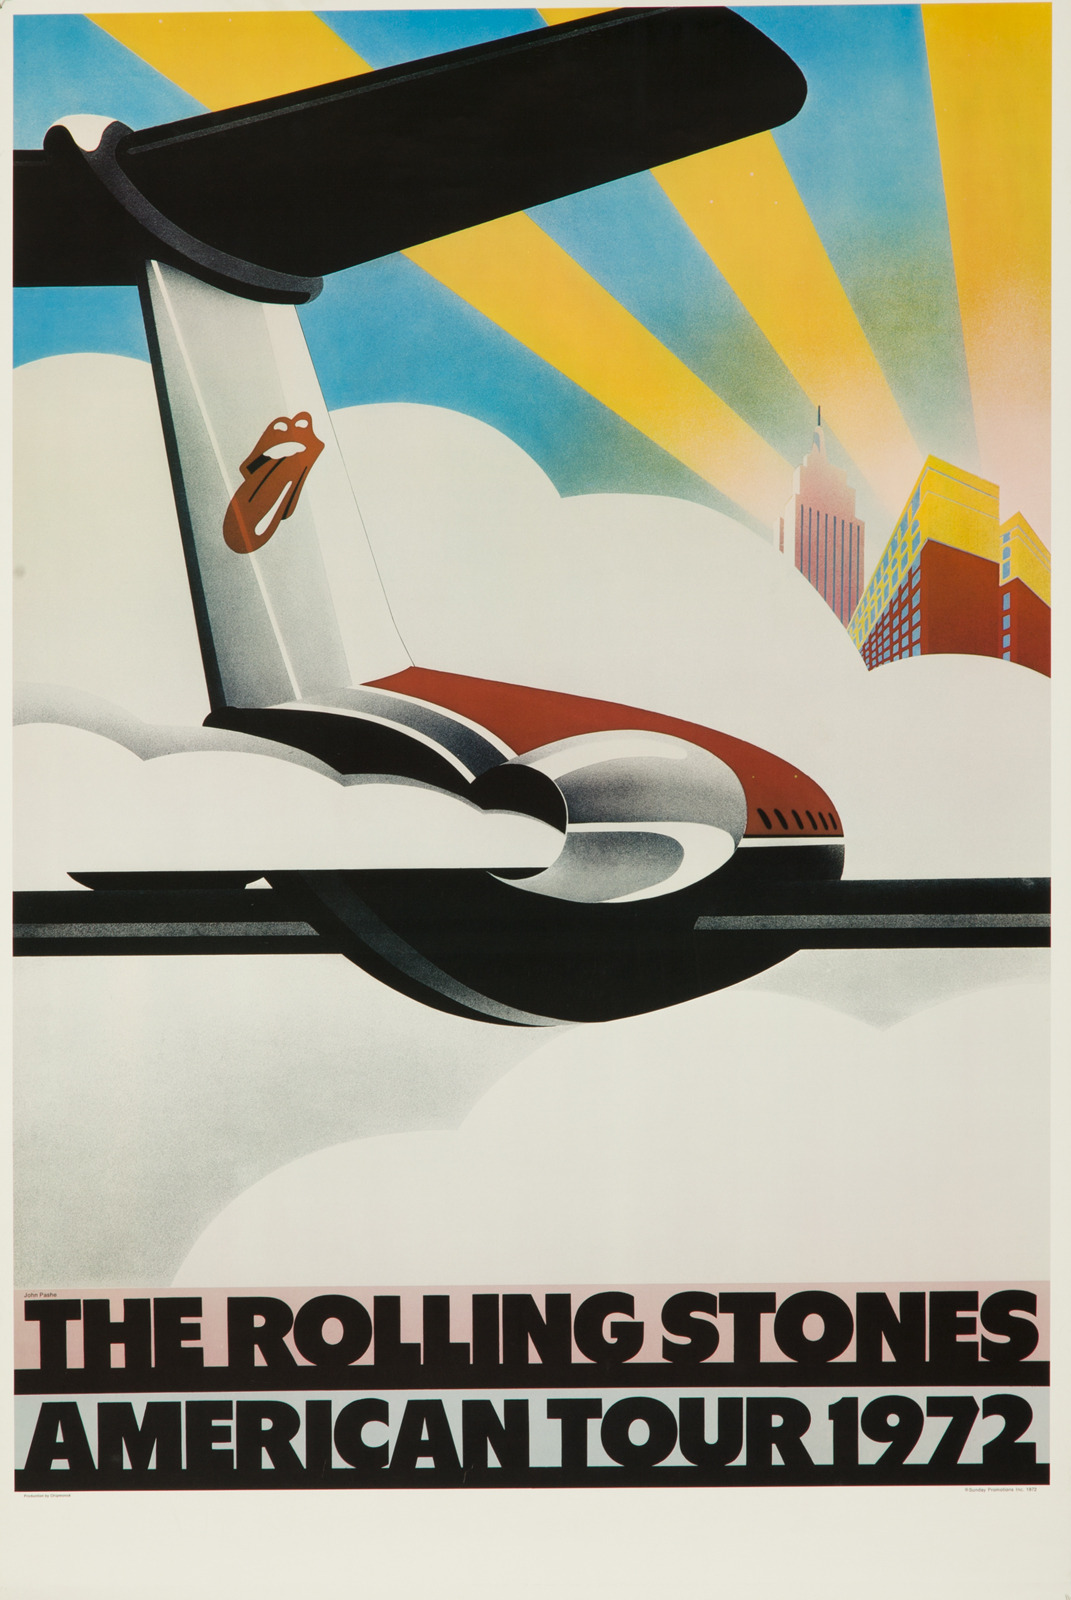 Rolling Stones American Tour 1972 poster